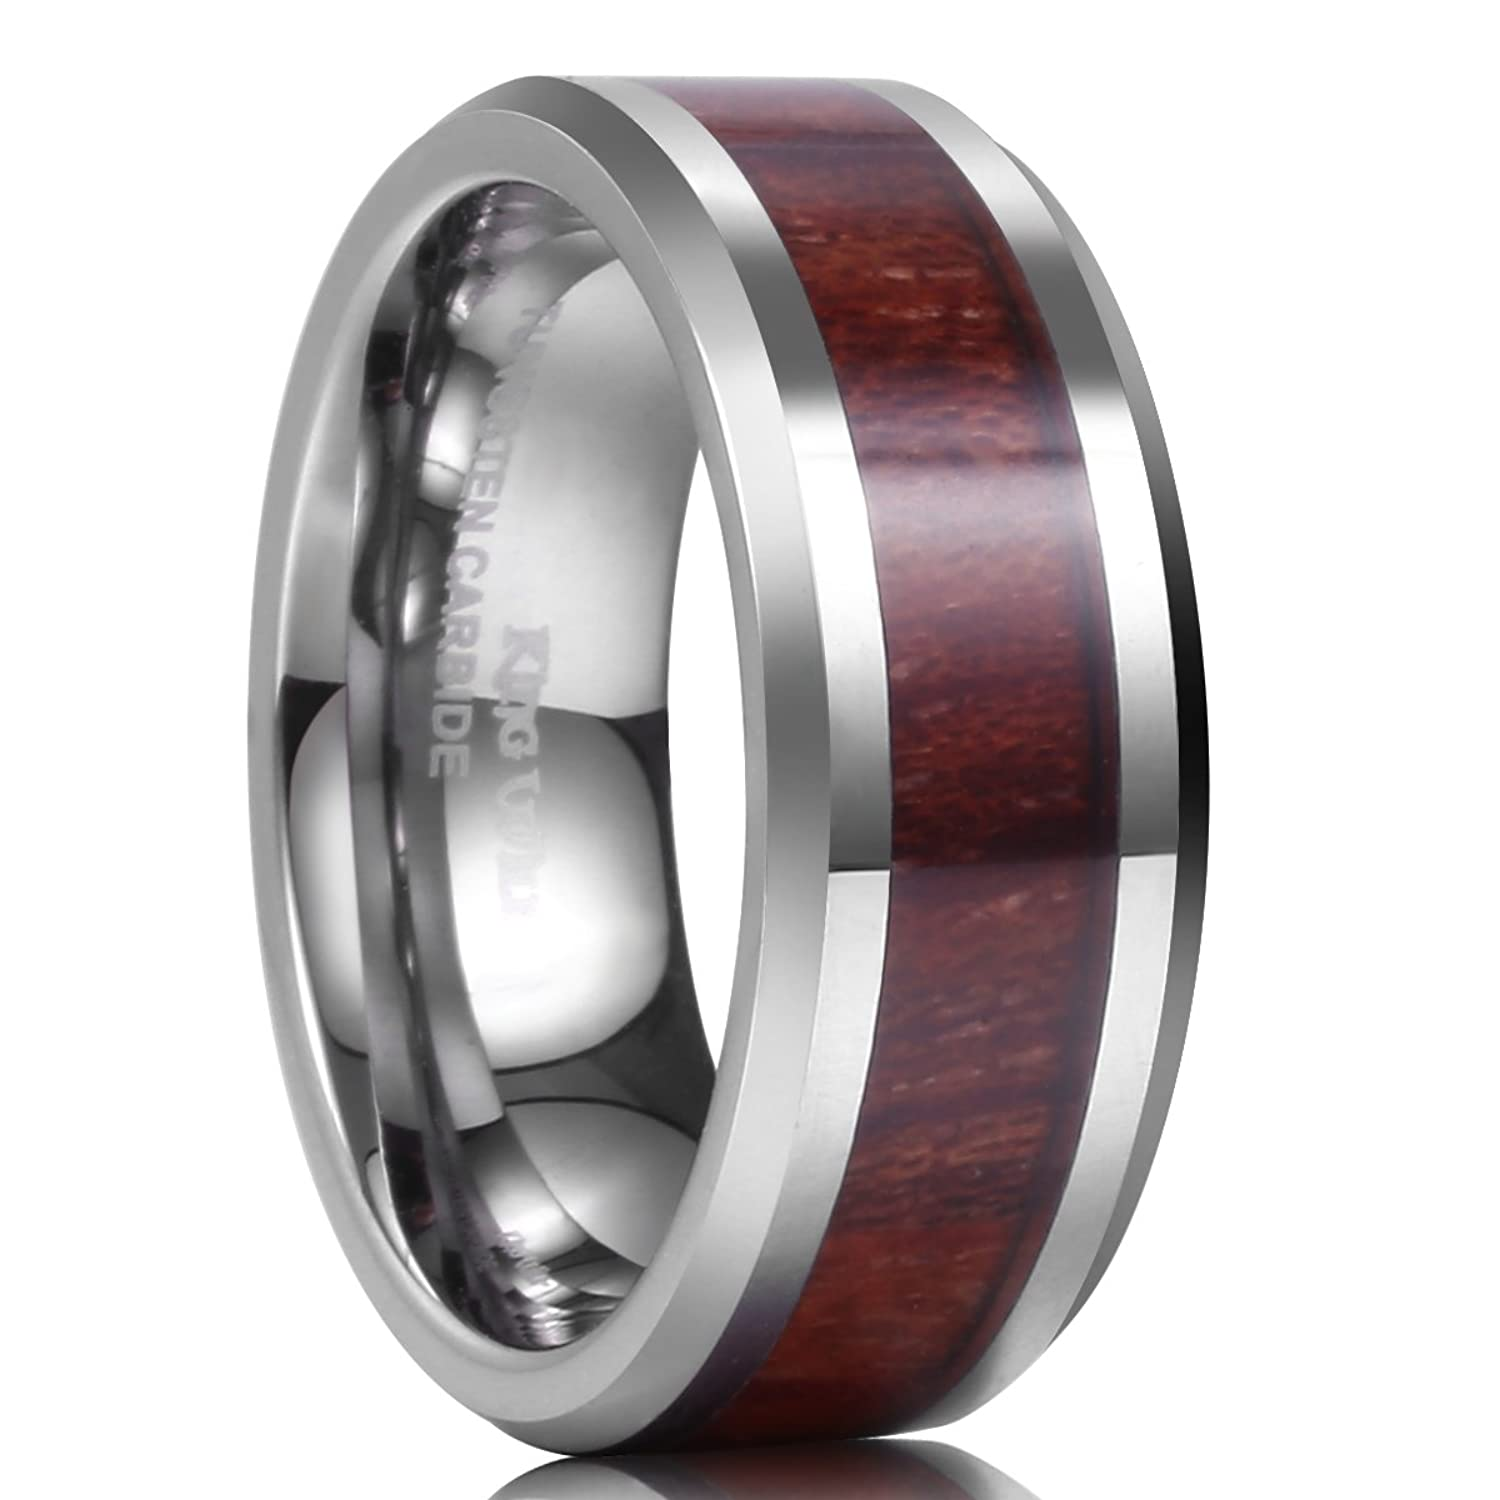 wedding rings wood petrified inspirational mens